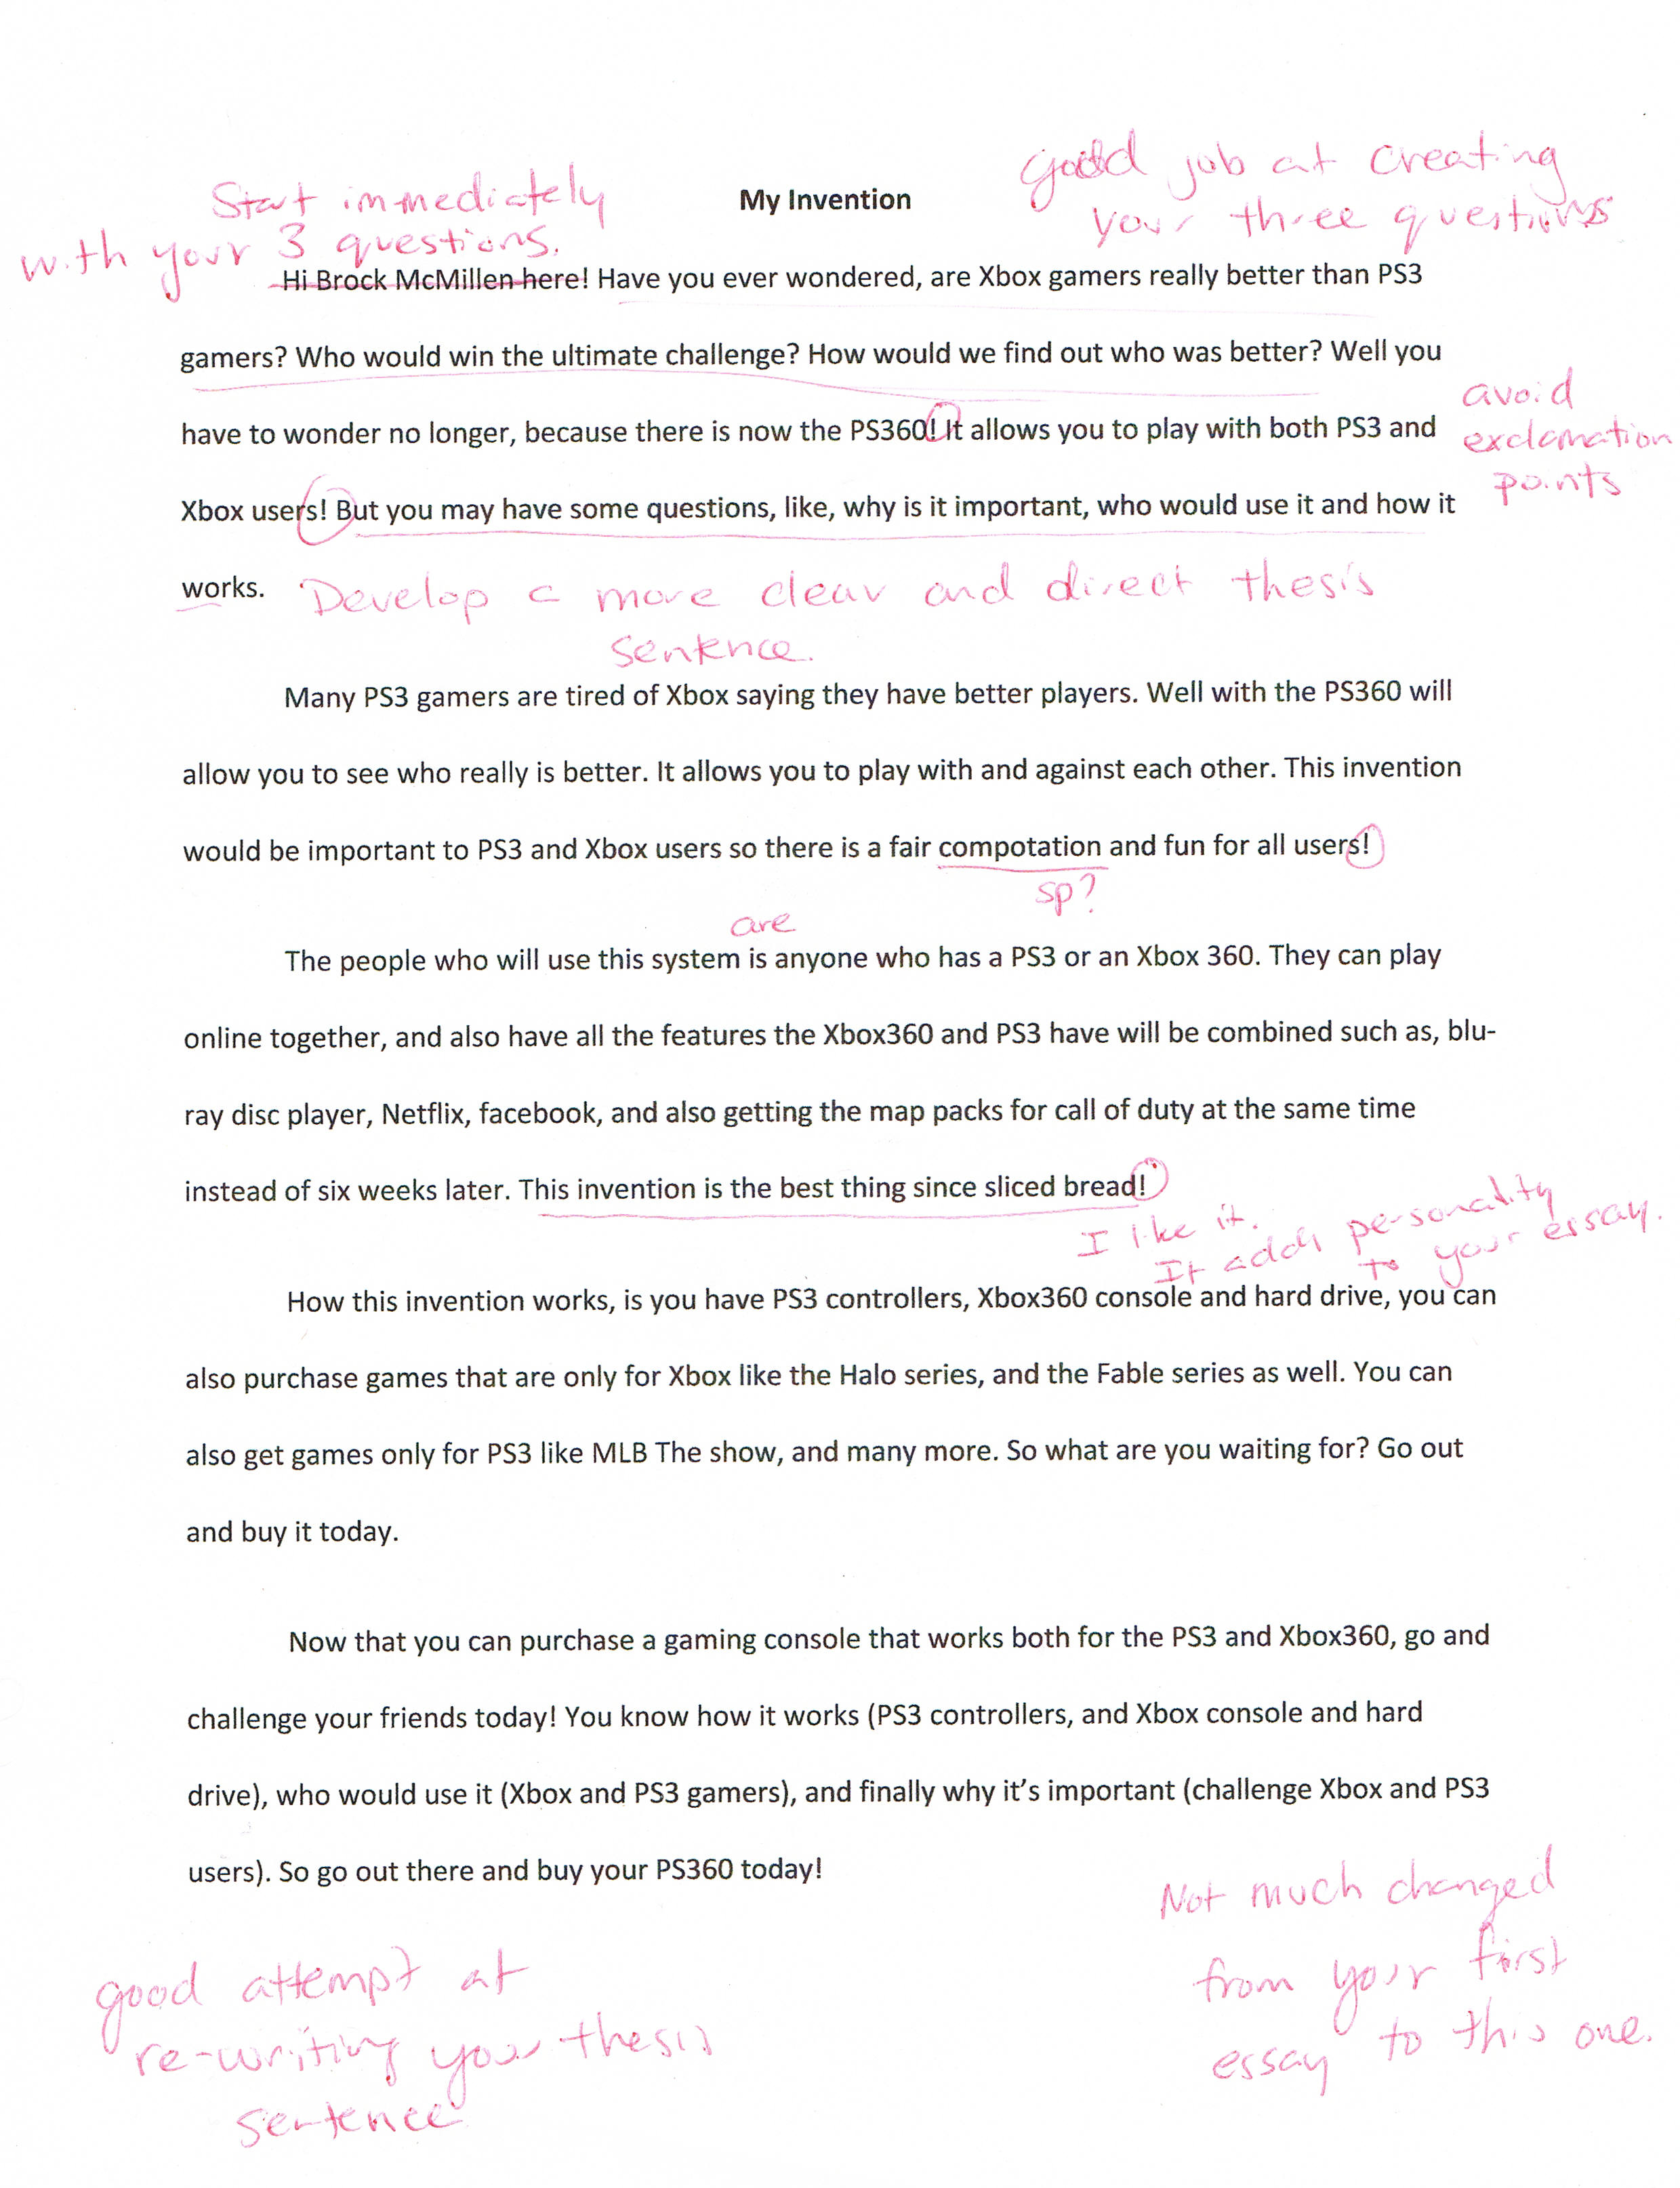 a good essay how to write a really good essay good essay hooks  good essay hooks good essay hook ikeabine cicero on friendship essay dialogue narrative essay example